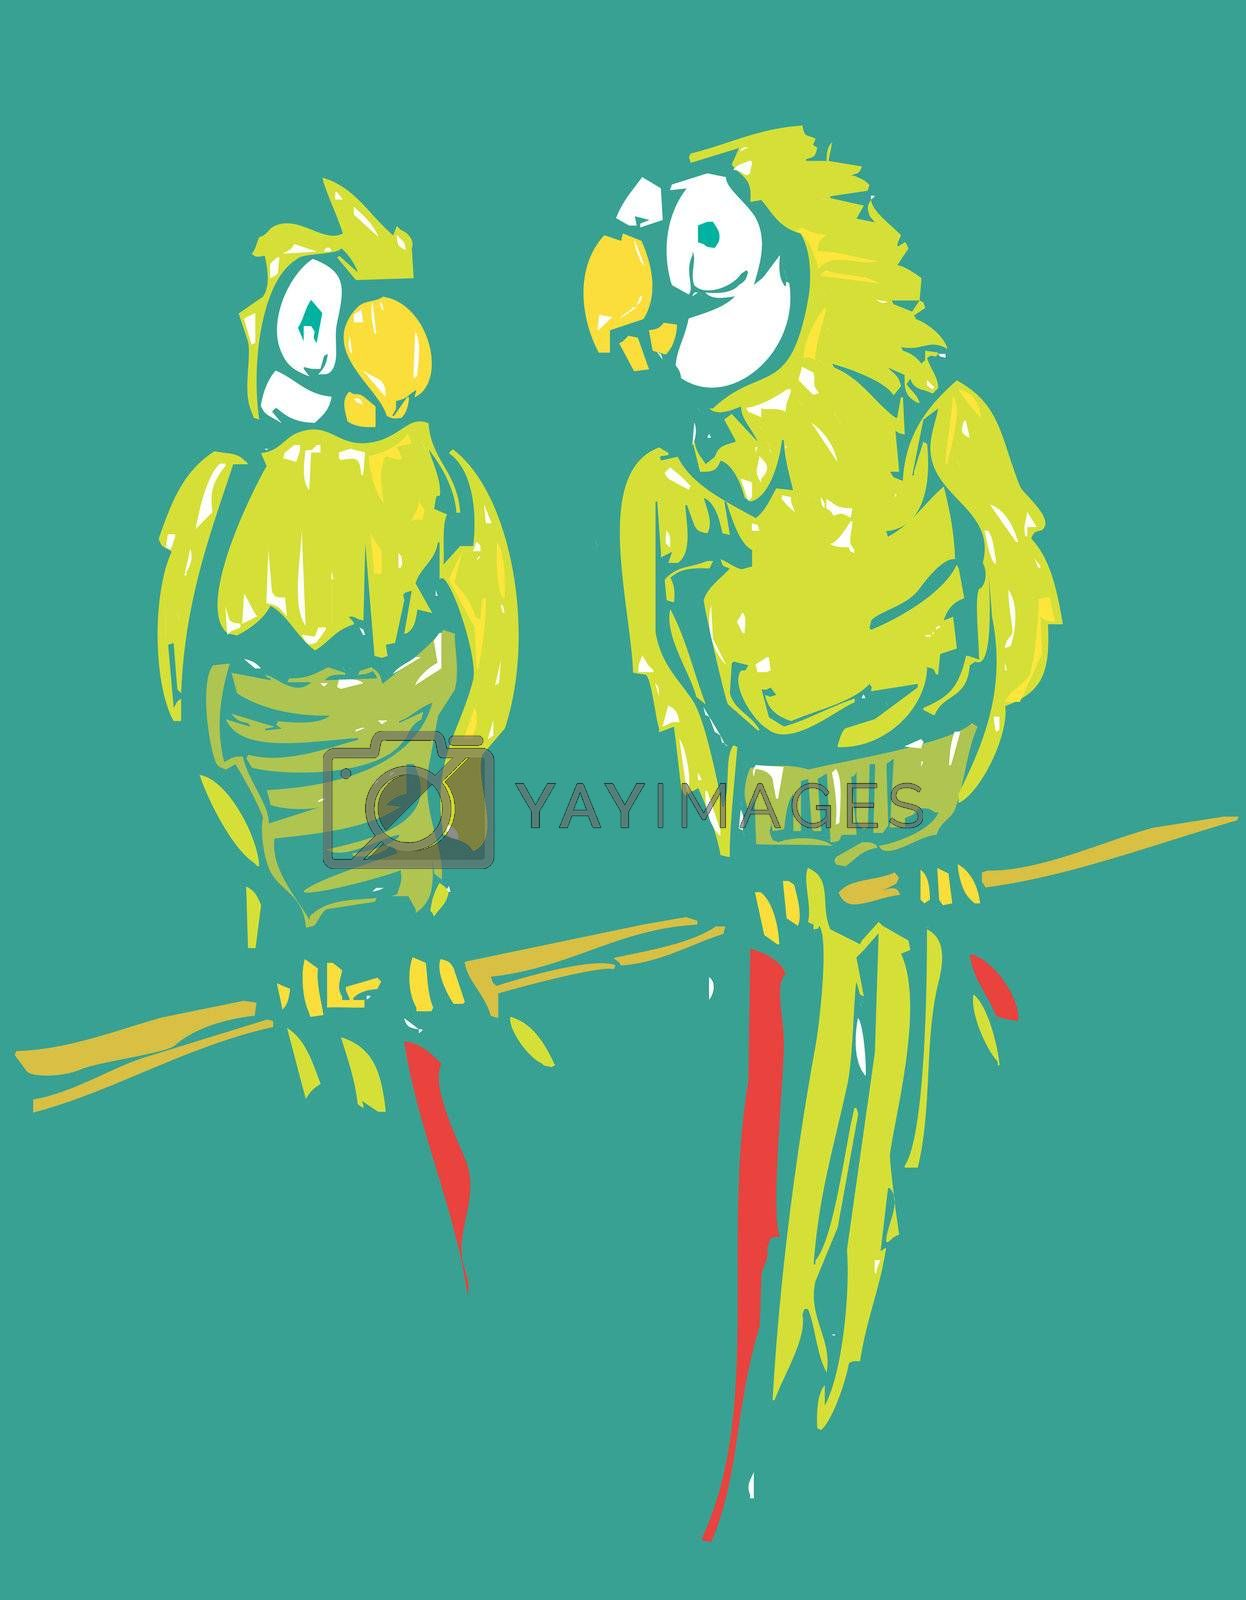 two parrots in green with red plumage sit together